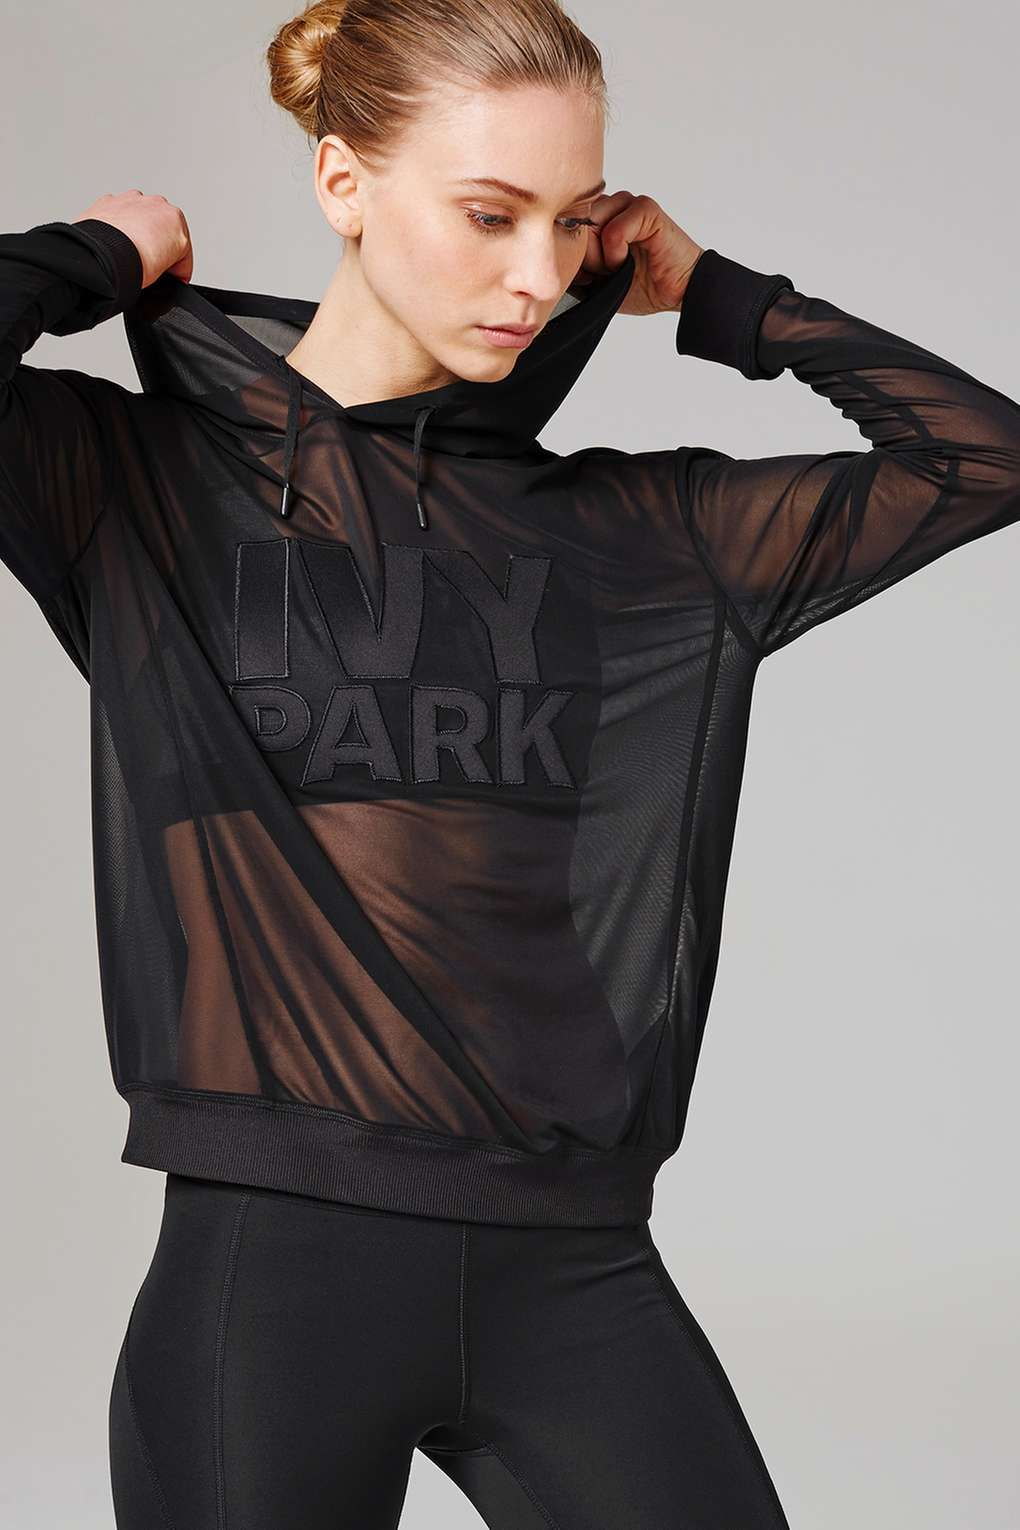 Shop For Ivy Park Activewear Athleisure Pinterest Clothes Outfits And Ivy Park Clothing